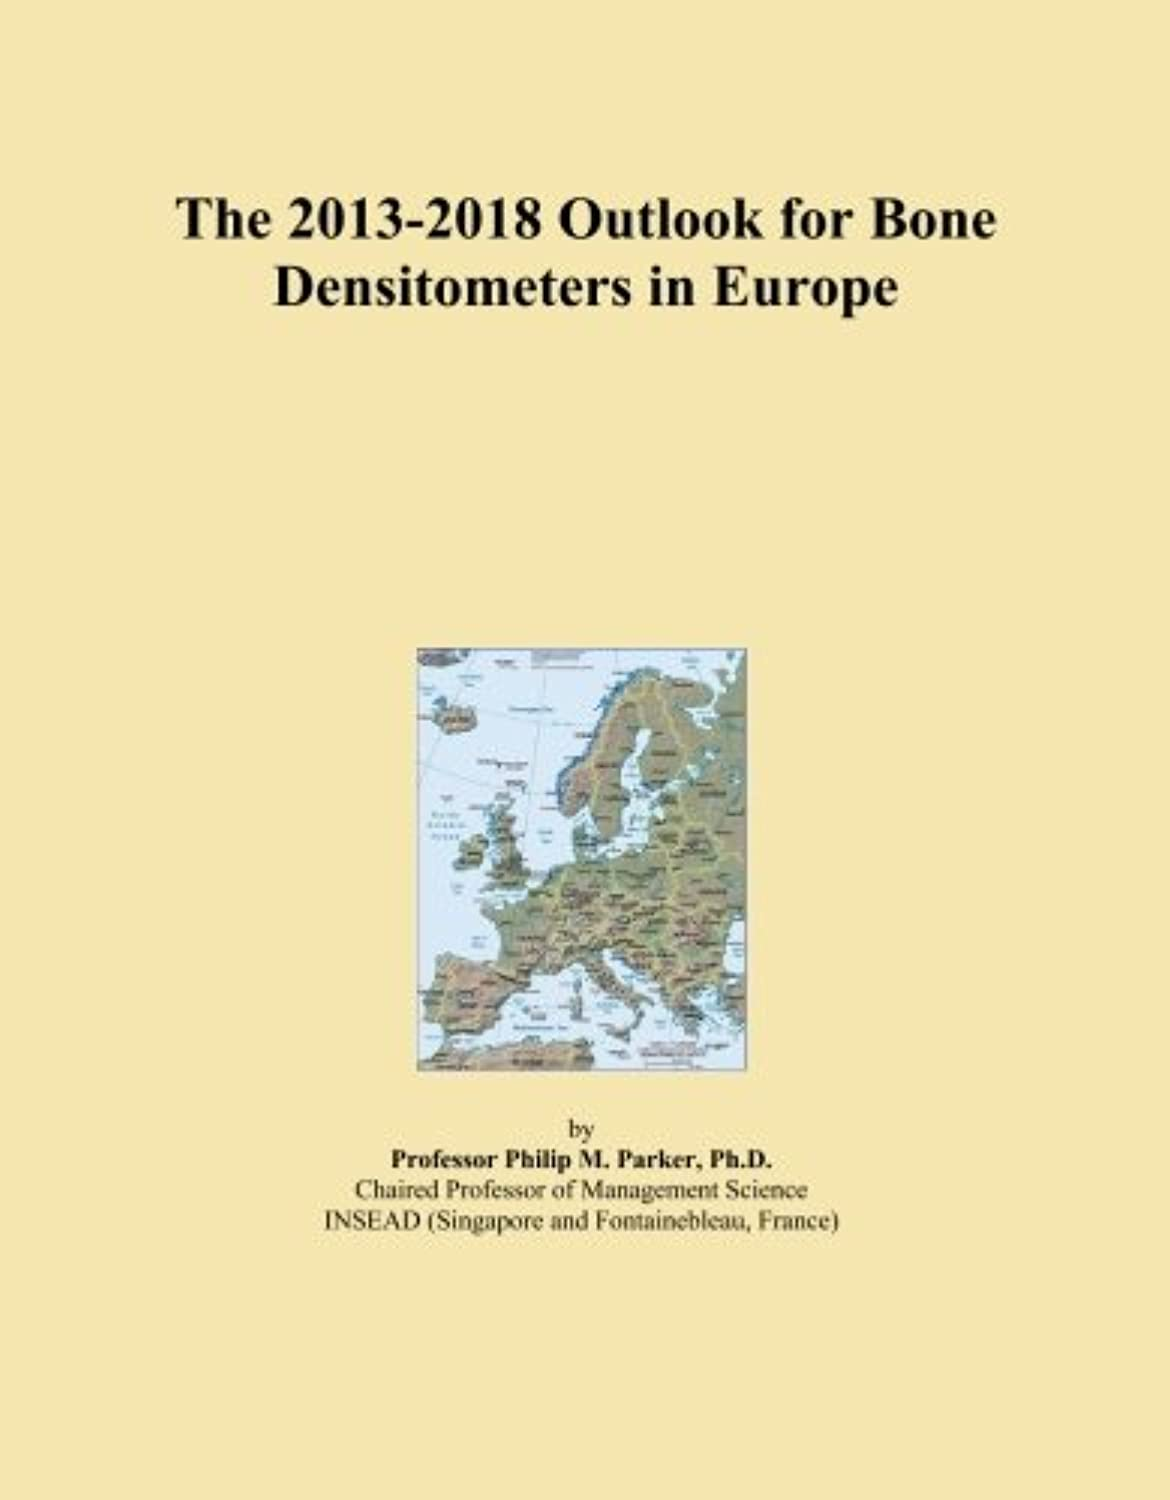 The 2013-2018 Outlook for Bone Densitometers in Europe